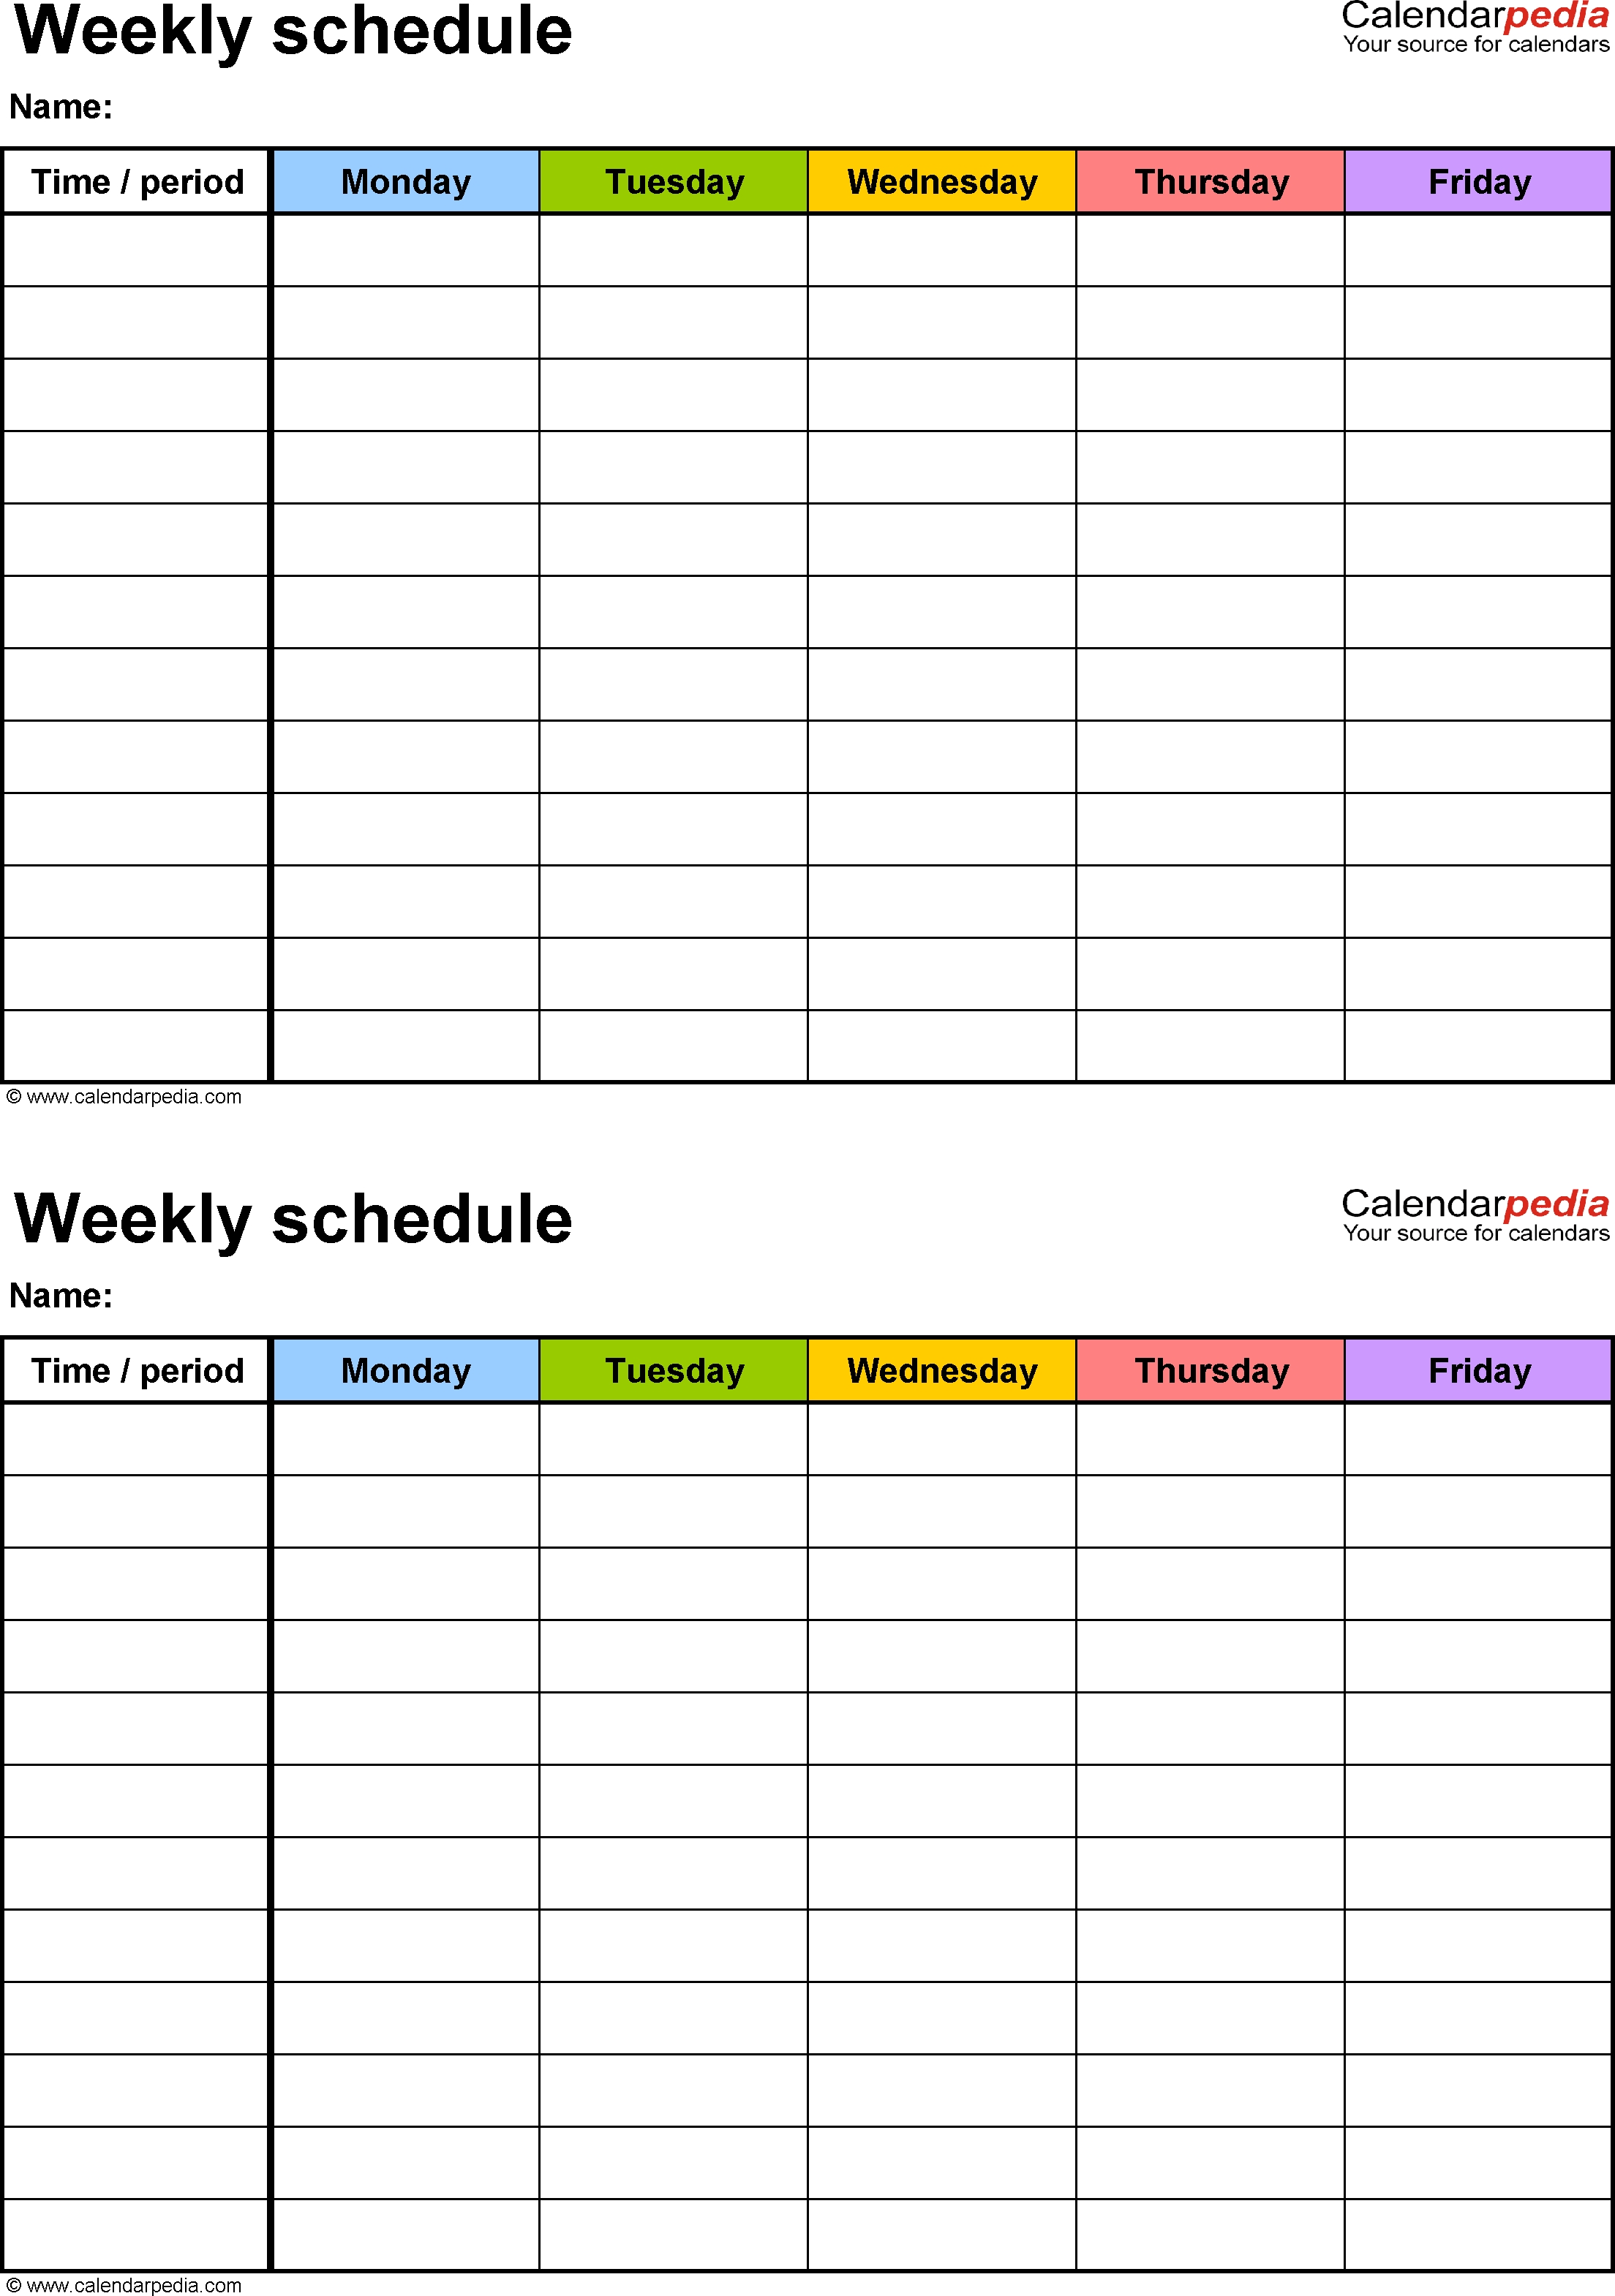 Free Weekly Schedule Templates For Excel - 18 Templates within Free Printable Template For Day Of The Week Schedule